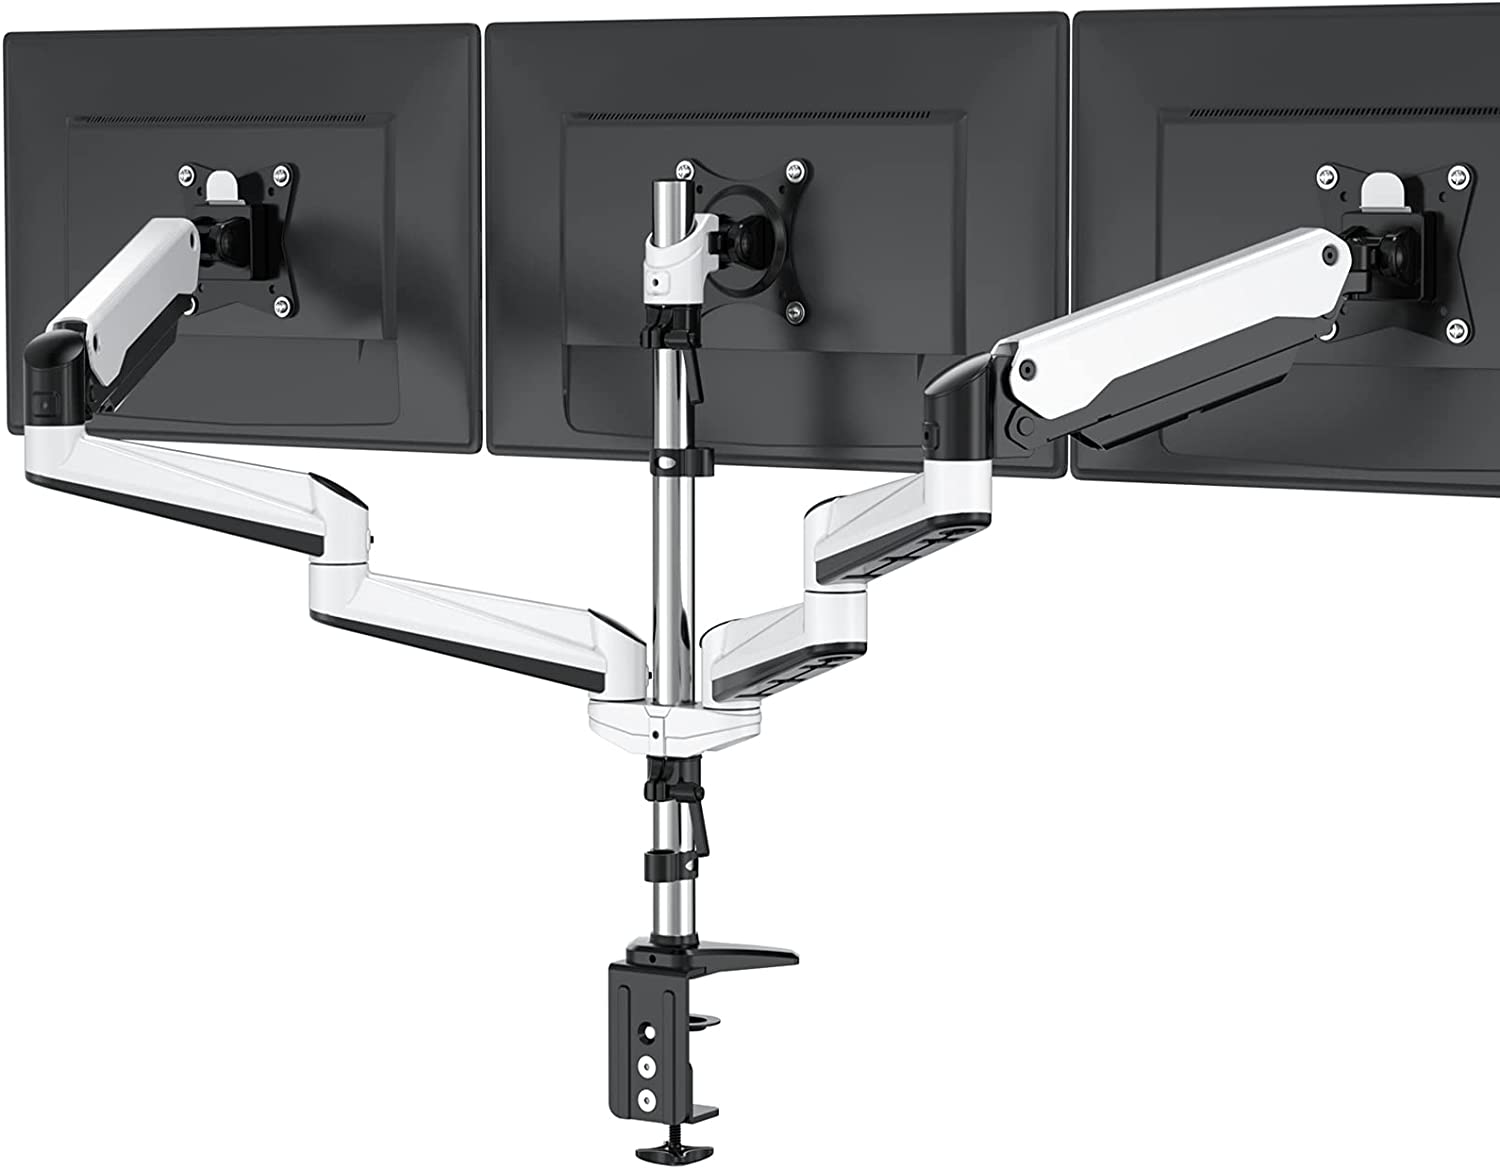 HUANUO Triple Monitor Stand - Full Motion Articulating Aluminum Gas Spring Monitor Mount Fit Three 17 to 32 inch LCD Computer Screens with Clamp, Grommet Kit